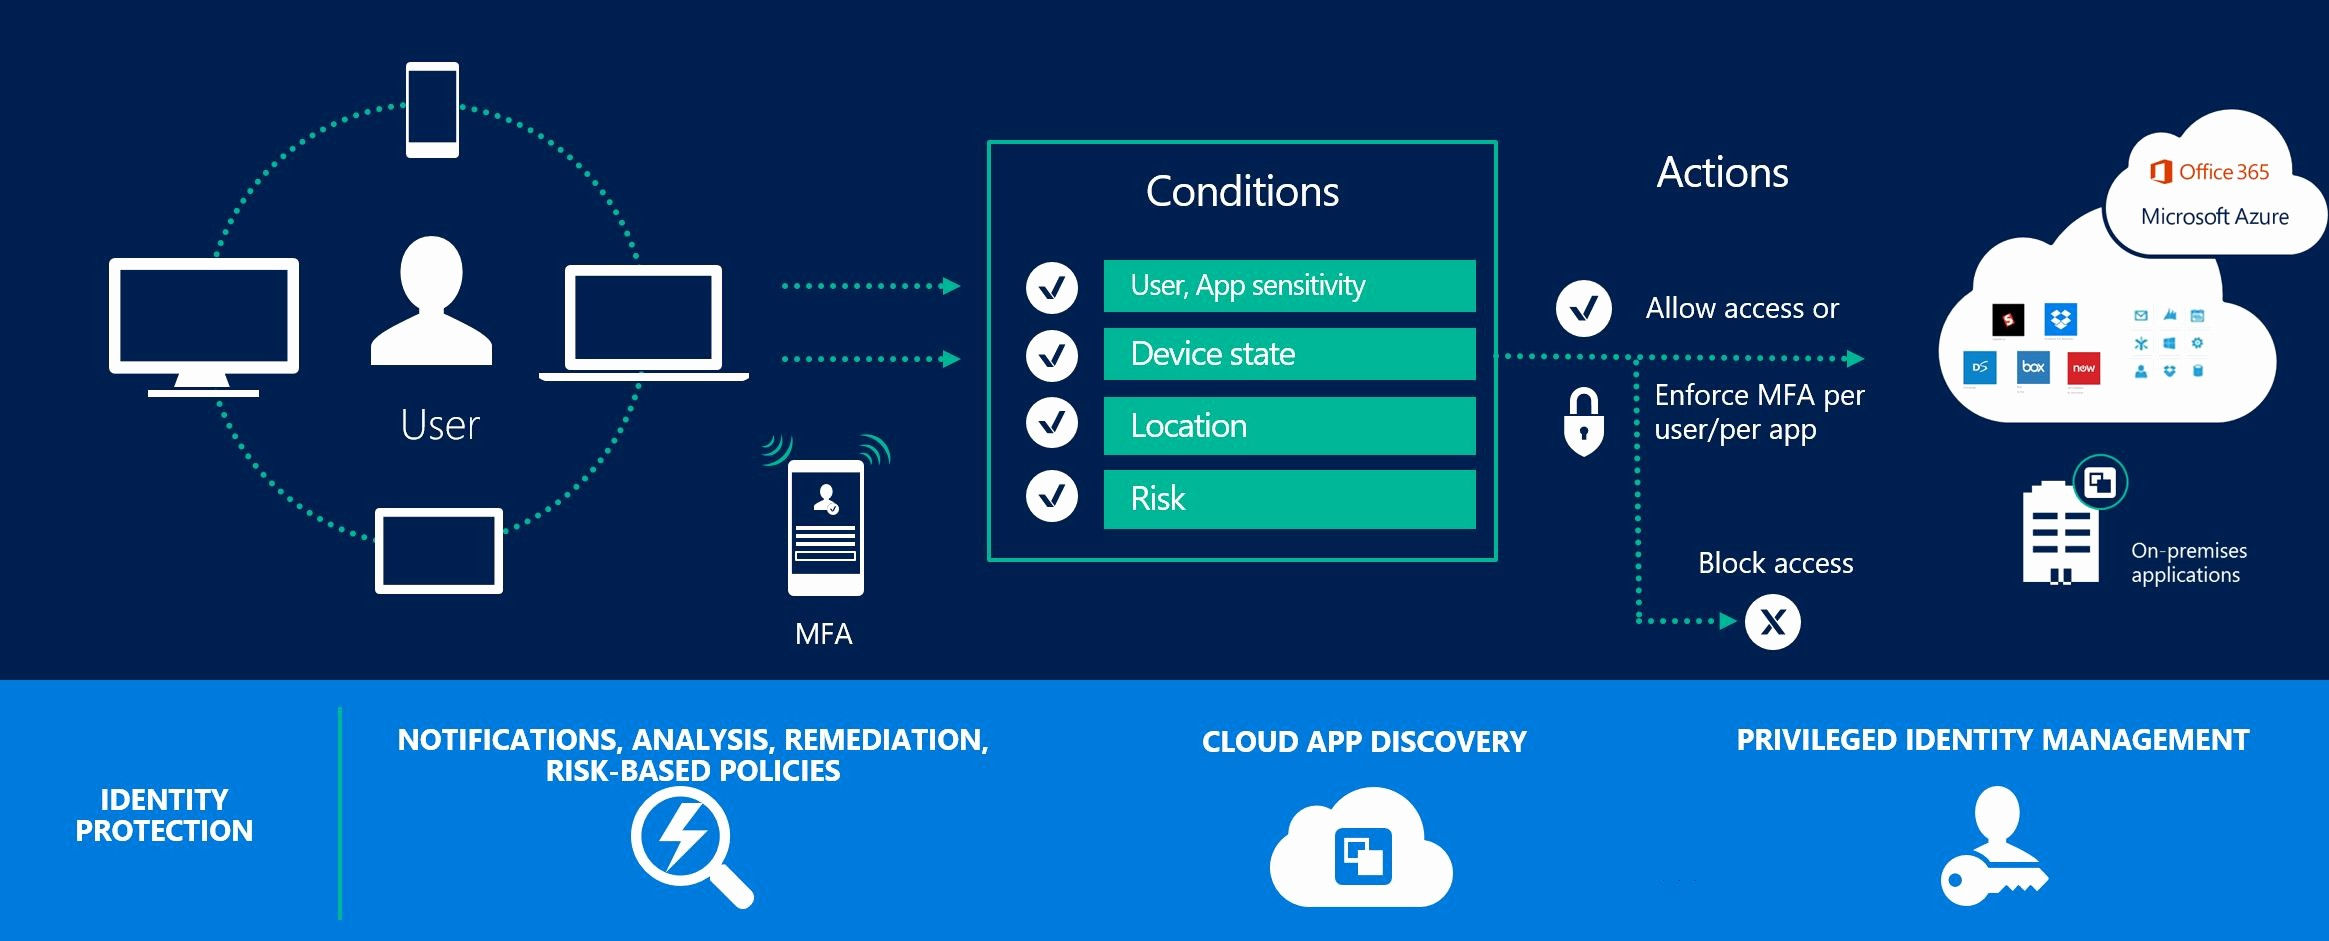 Portal-office-com Luxury Conditional Access for Fice 365 Apps thatlazyadmin